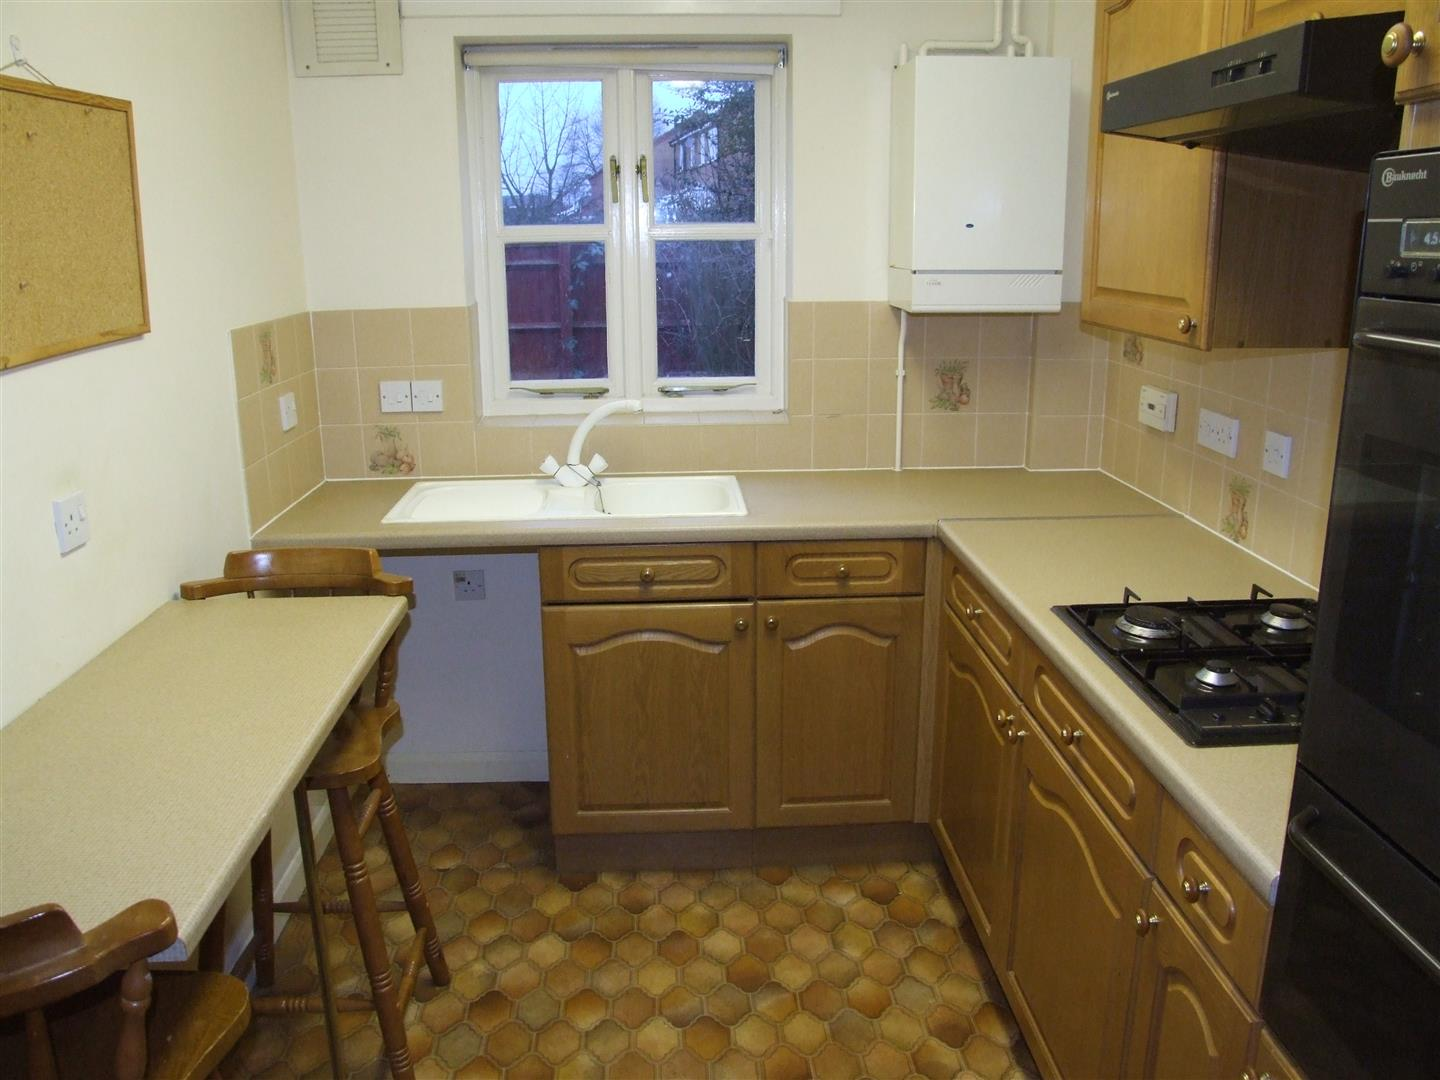 1 bed house to rent in Long Sutton Spalding, PE12 9RR 1